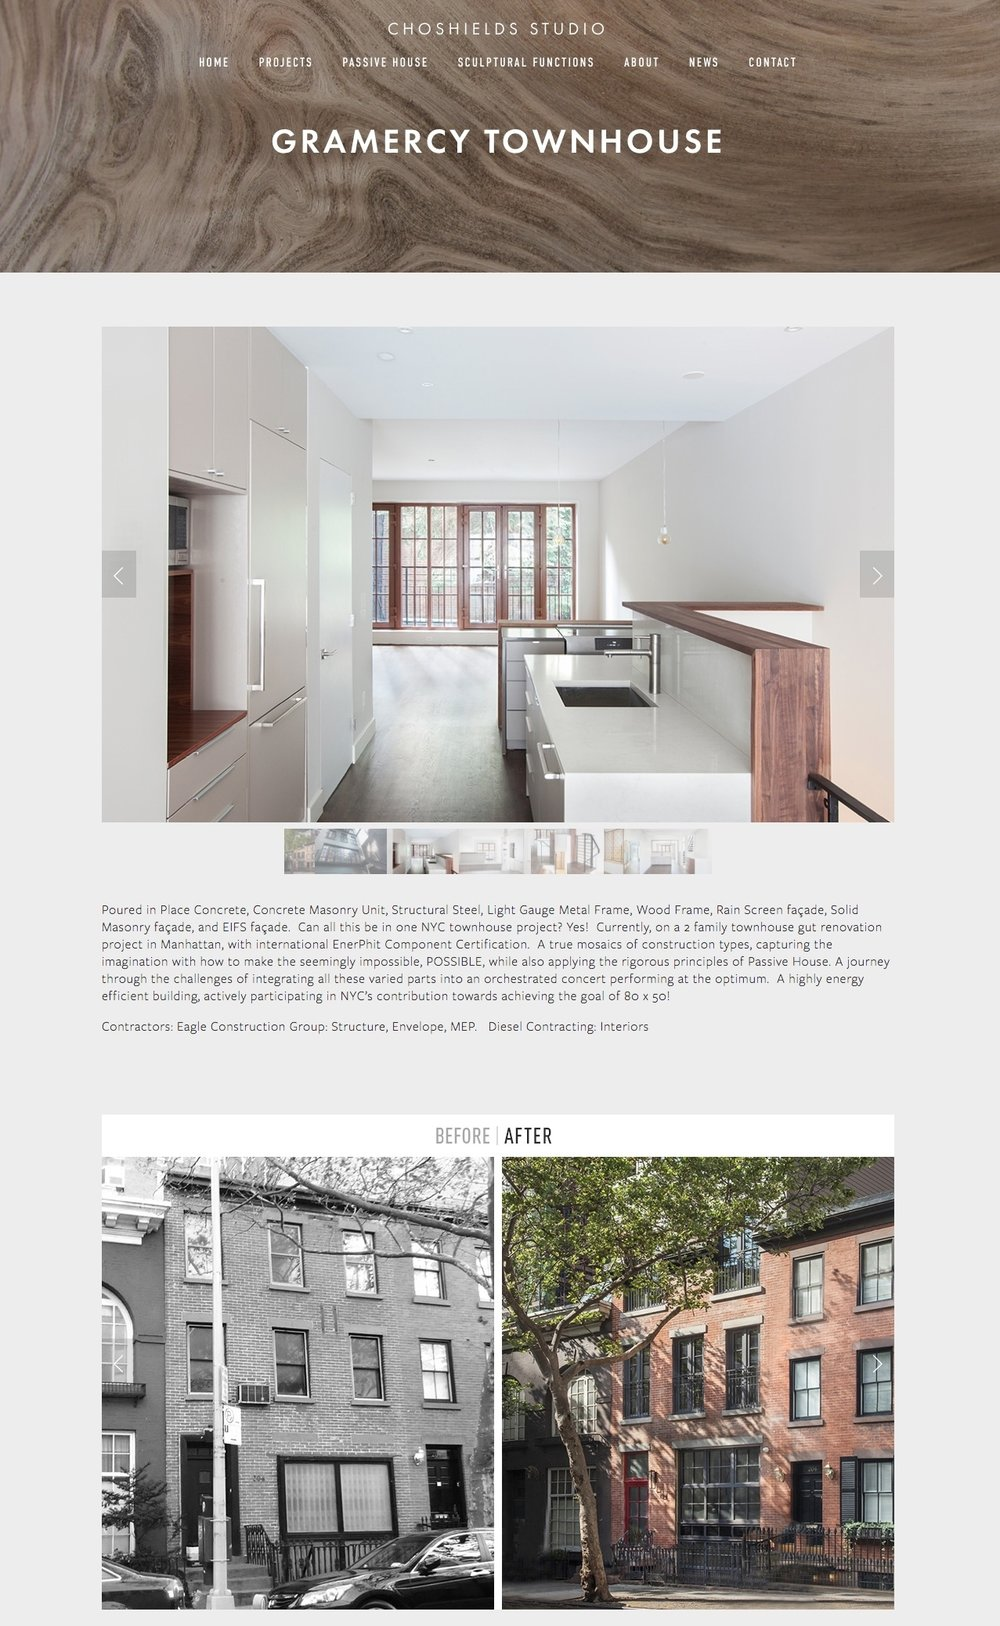 ChoShields2018_Website_Projects_Residential_Gramercy_Screenshot.jpg